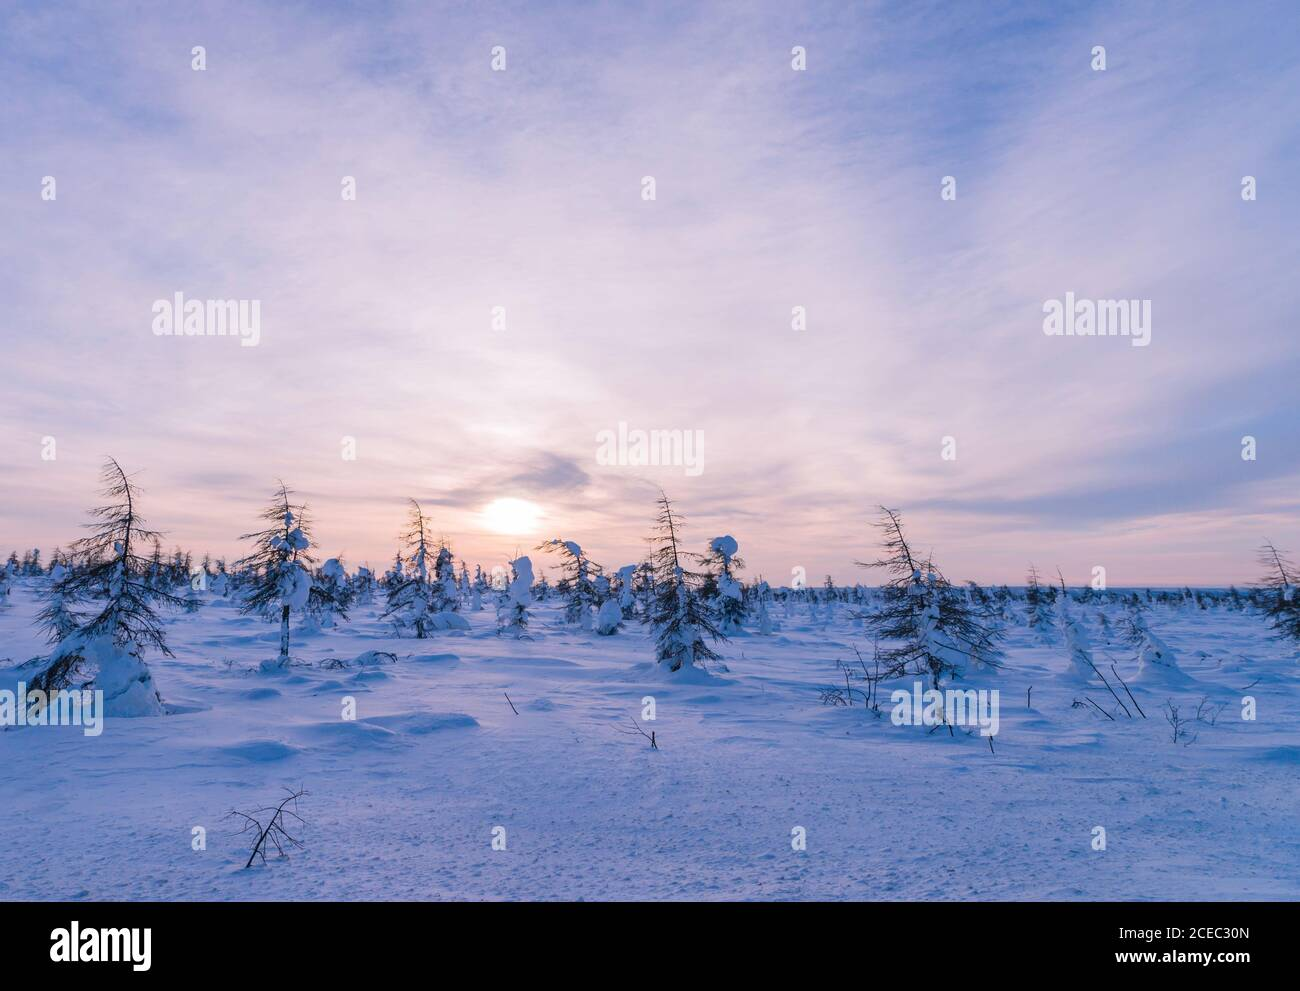 Beautiful Winter Background Wintertime Wallpaper Snow Covered Trees Close Up Outdoors With Selective Focus Nature Stock Photo Alamy Download wallpapers snow for desktop and mobile in hd, 4k and 8k resolution. alamy